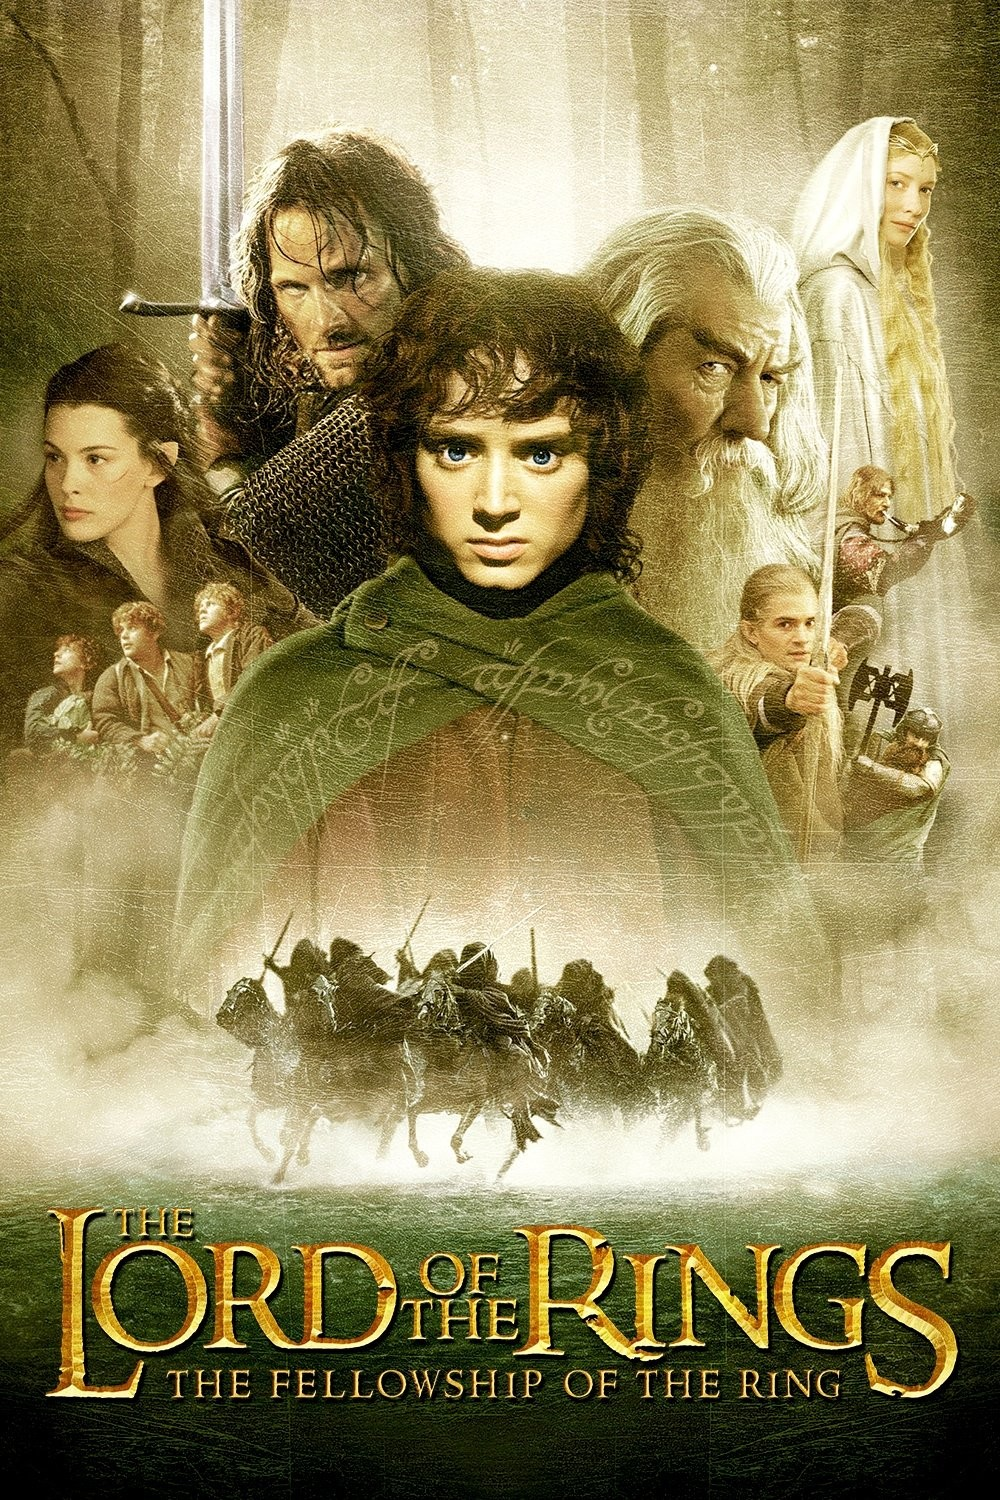 Movie Poster Lord of The Rings The Lord of The Rings Poster